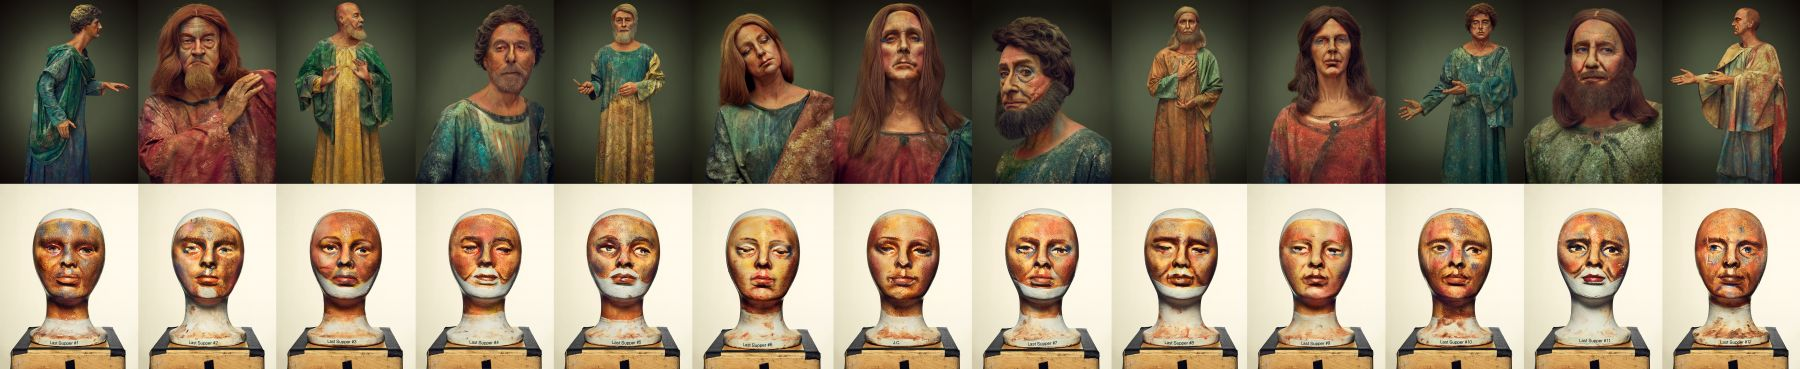 "Da Vinci, The Last Supper, Portraits and Pageant Makeup Templates, 2016, Horizontal Grouping, 354.25"" x 75.5"""